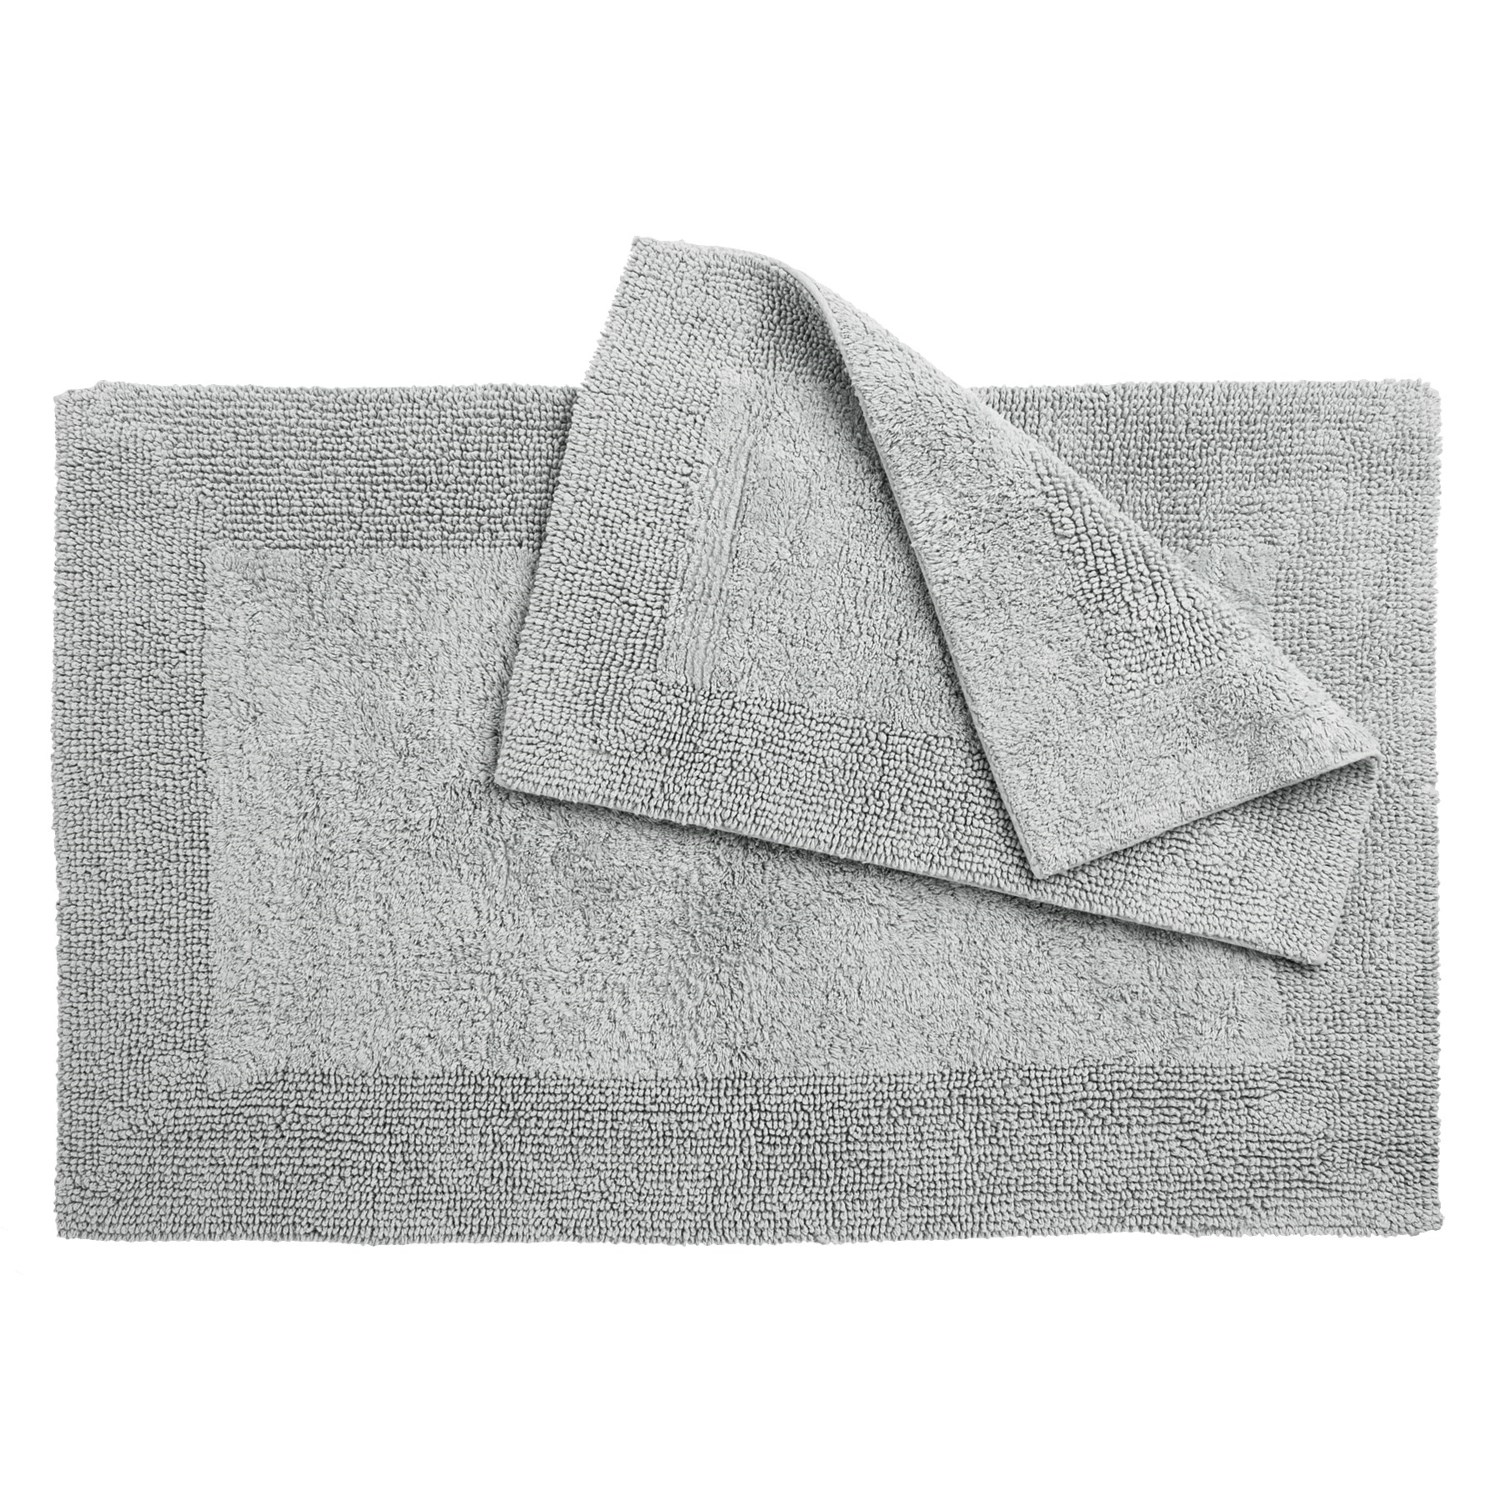 Hotel Collection Bath Mats: Vista Home Fashions Grand Hotel Collection Oversized Bath